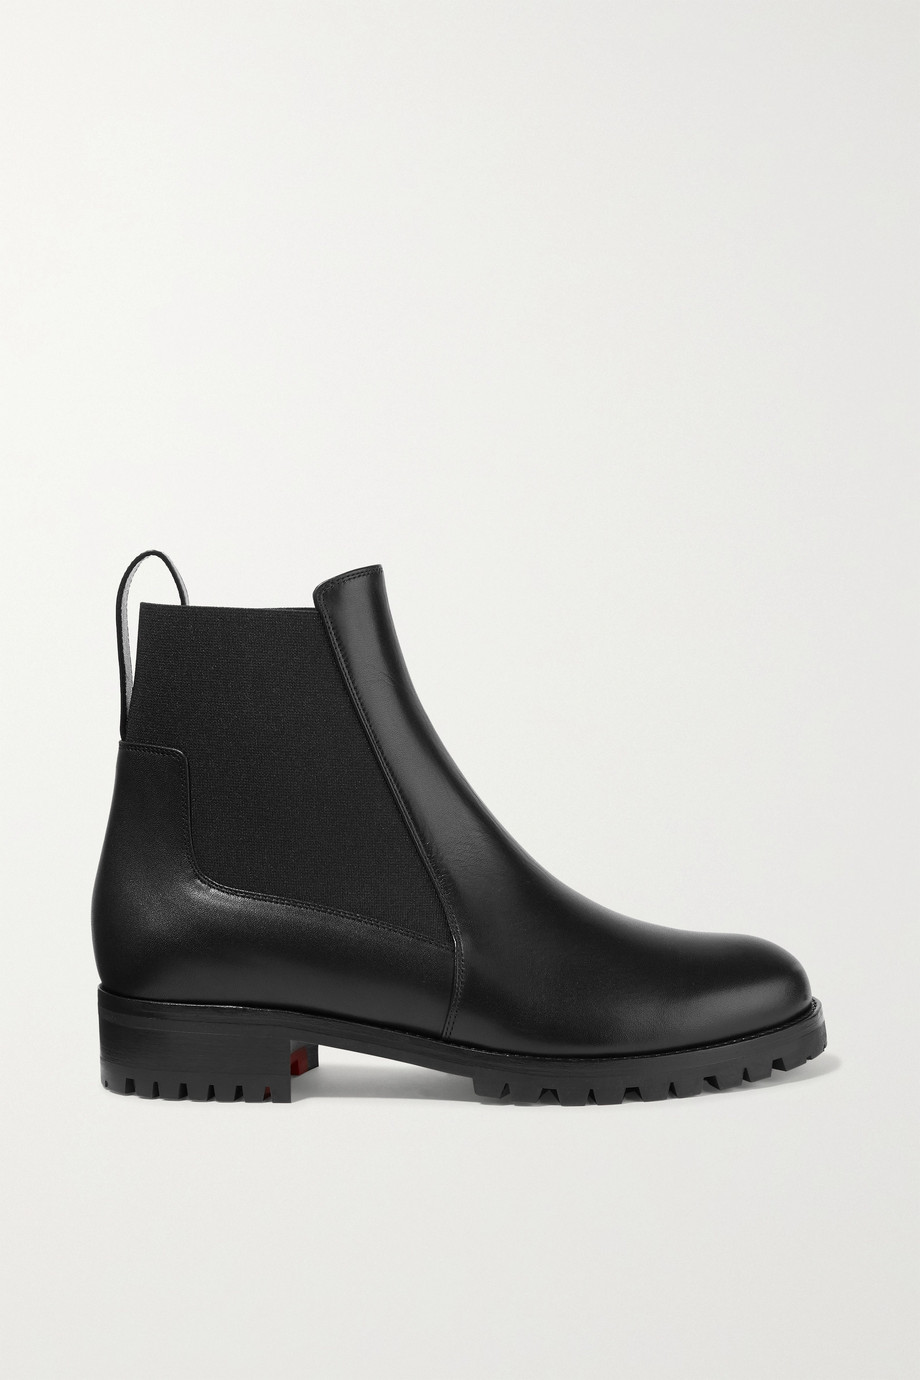 CHRISTIAN LOUBOUTIN Machcroche leather Chelsea boots